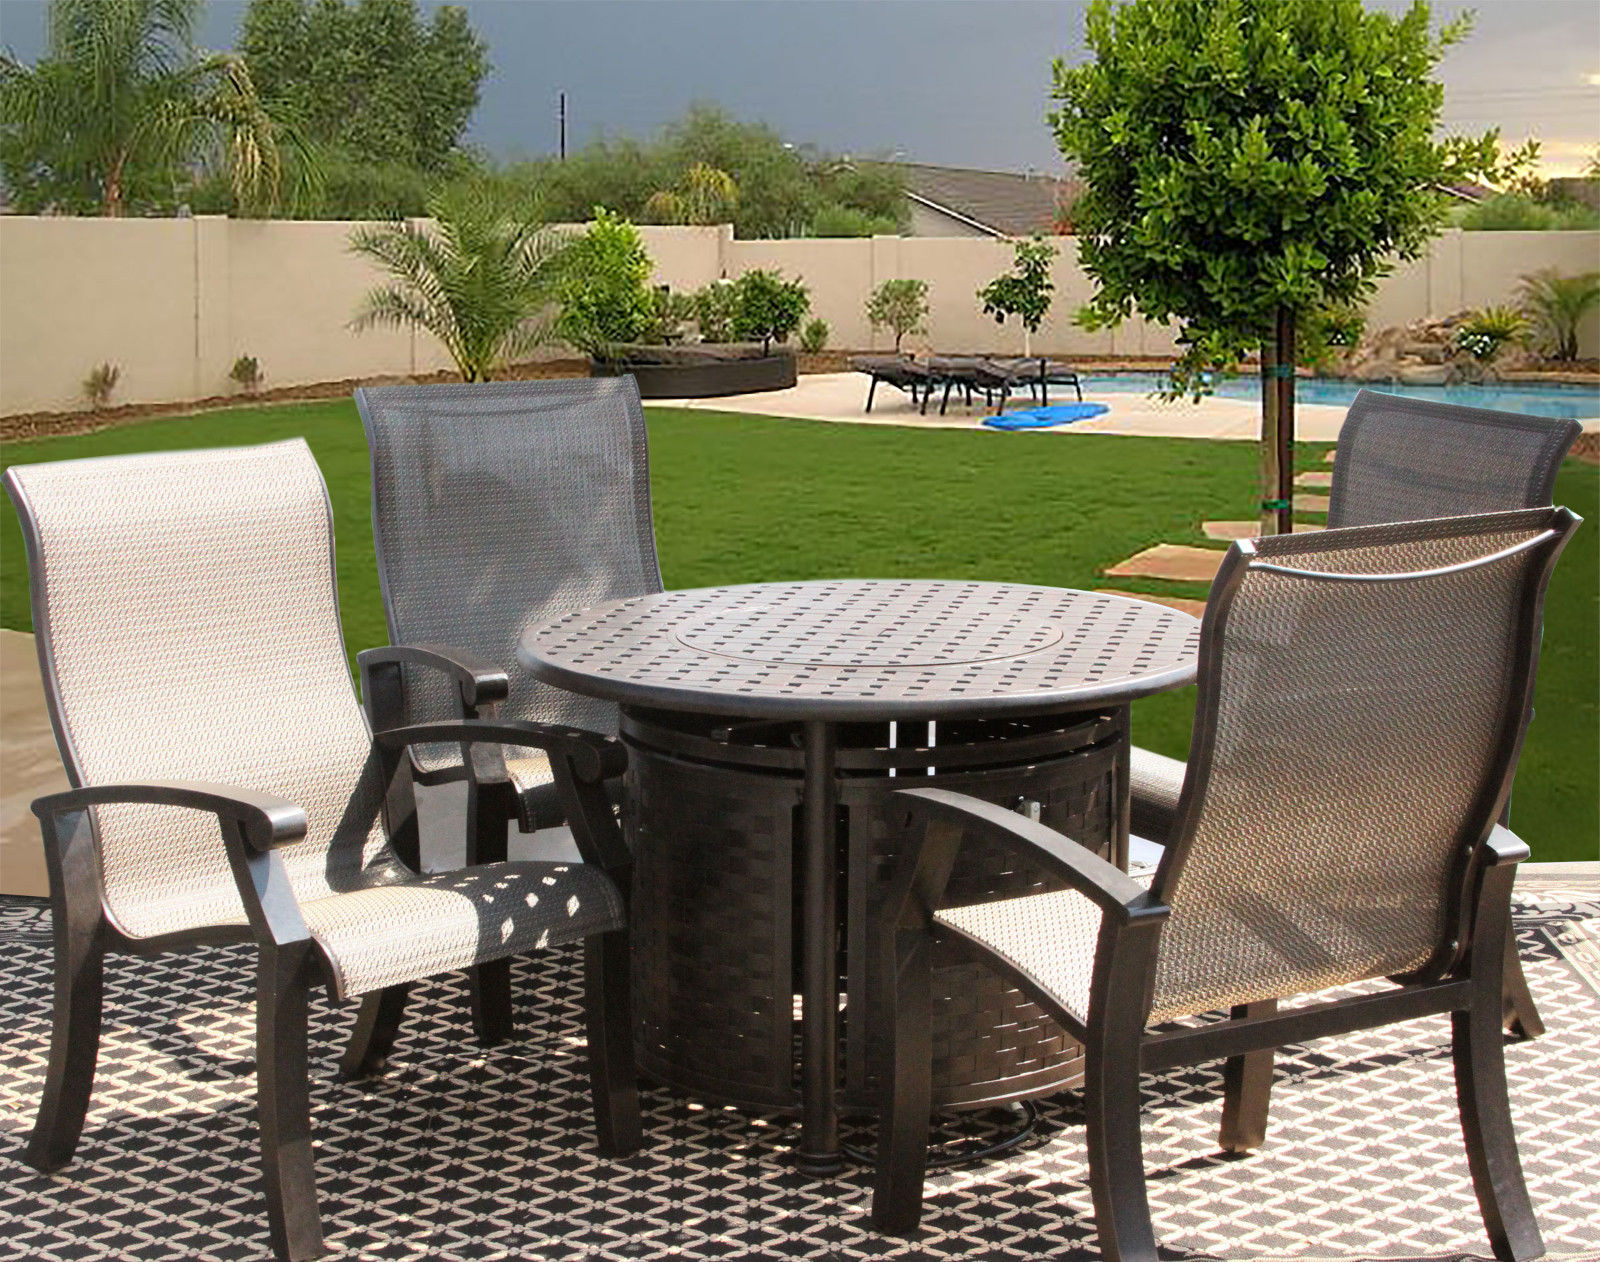 5 PC BARBADOS SLING OUTDOOR PATIO DINING SET FOR 4 PERSON WITH ROUND FIRE TABLE